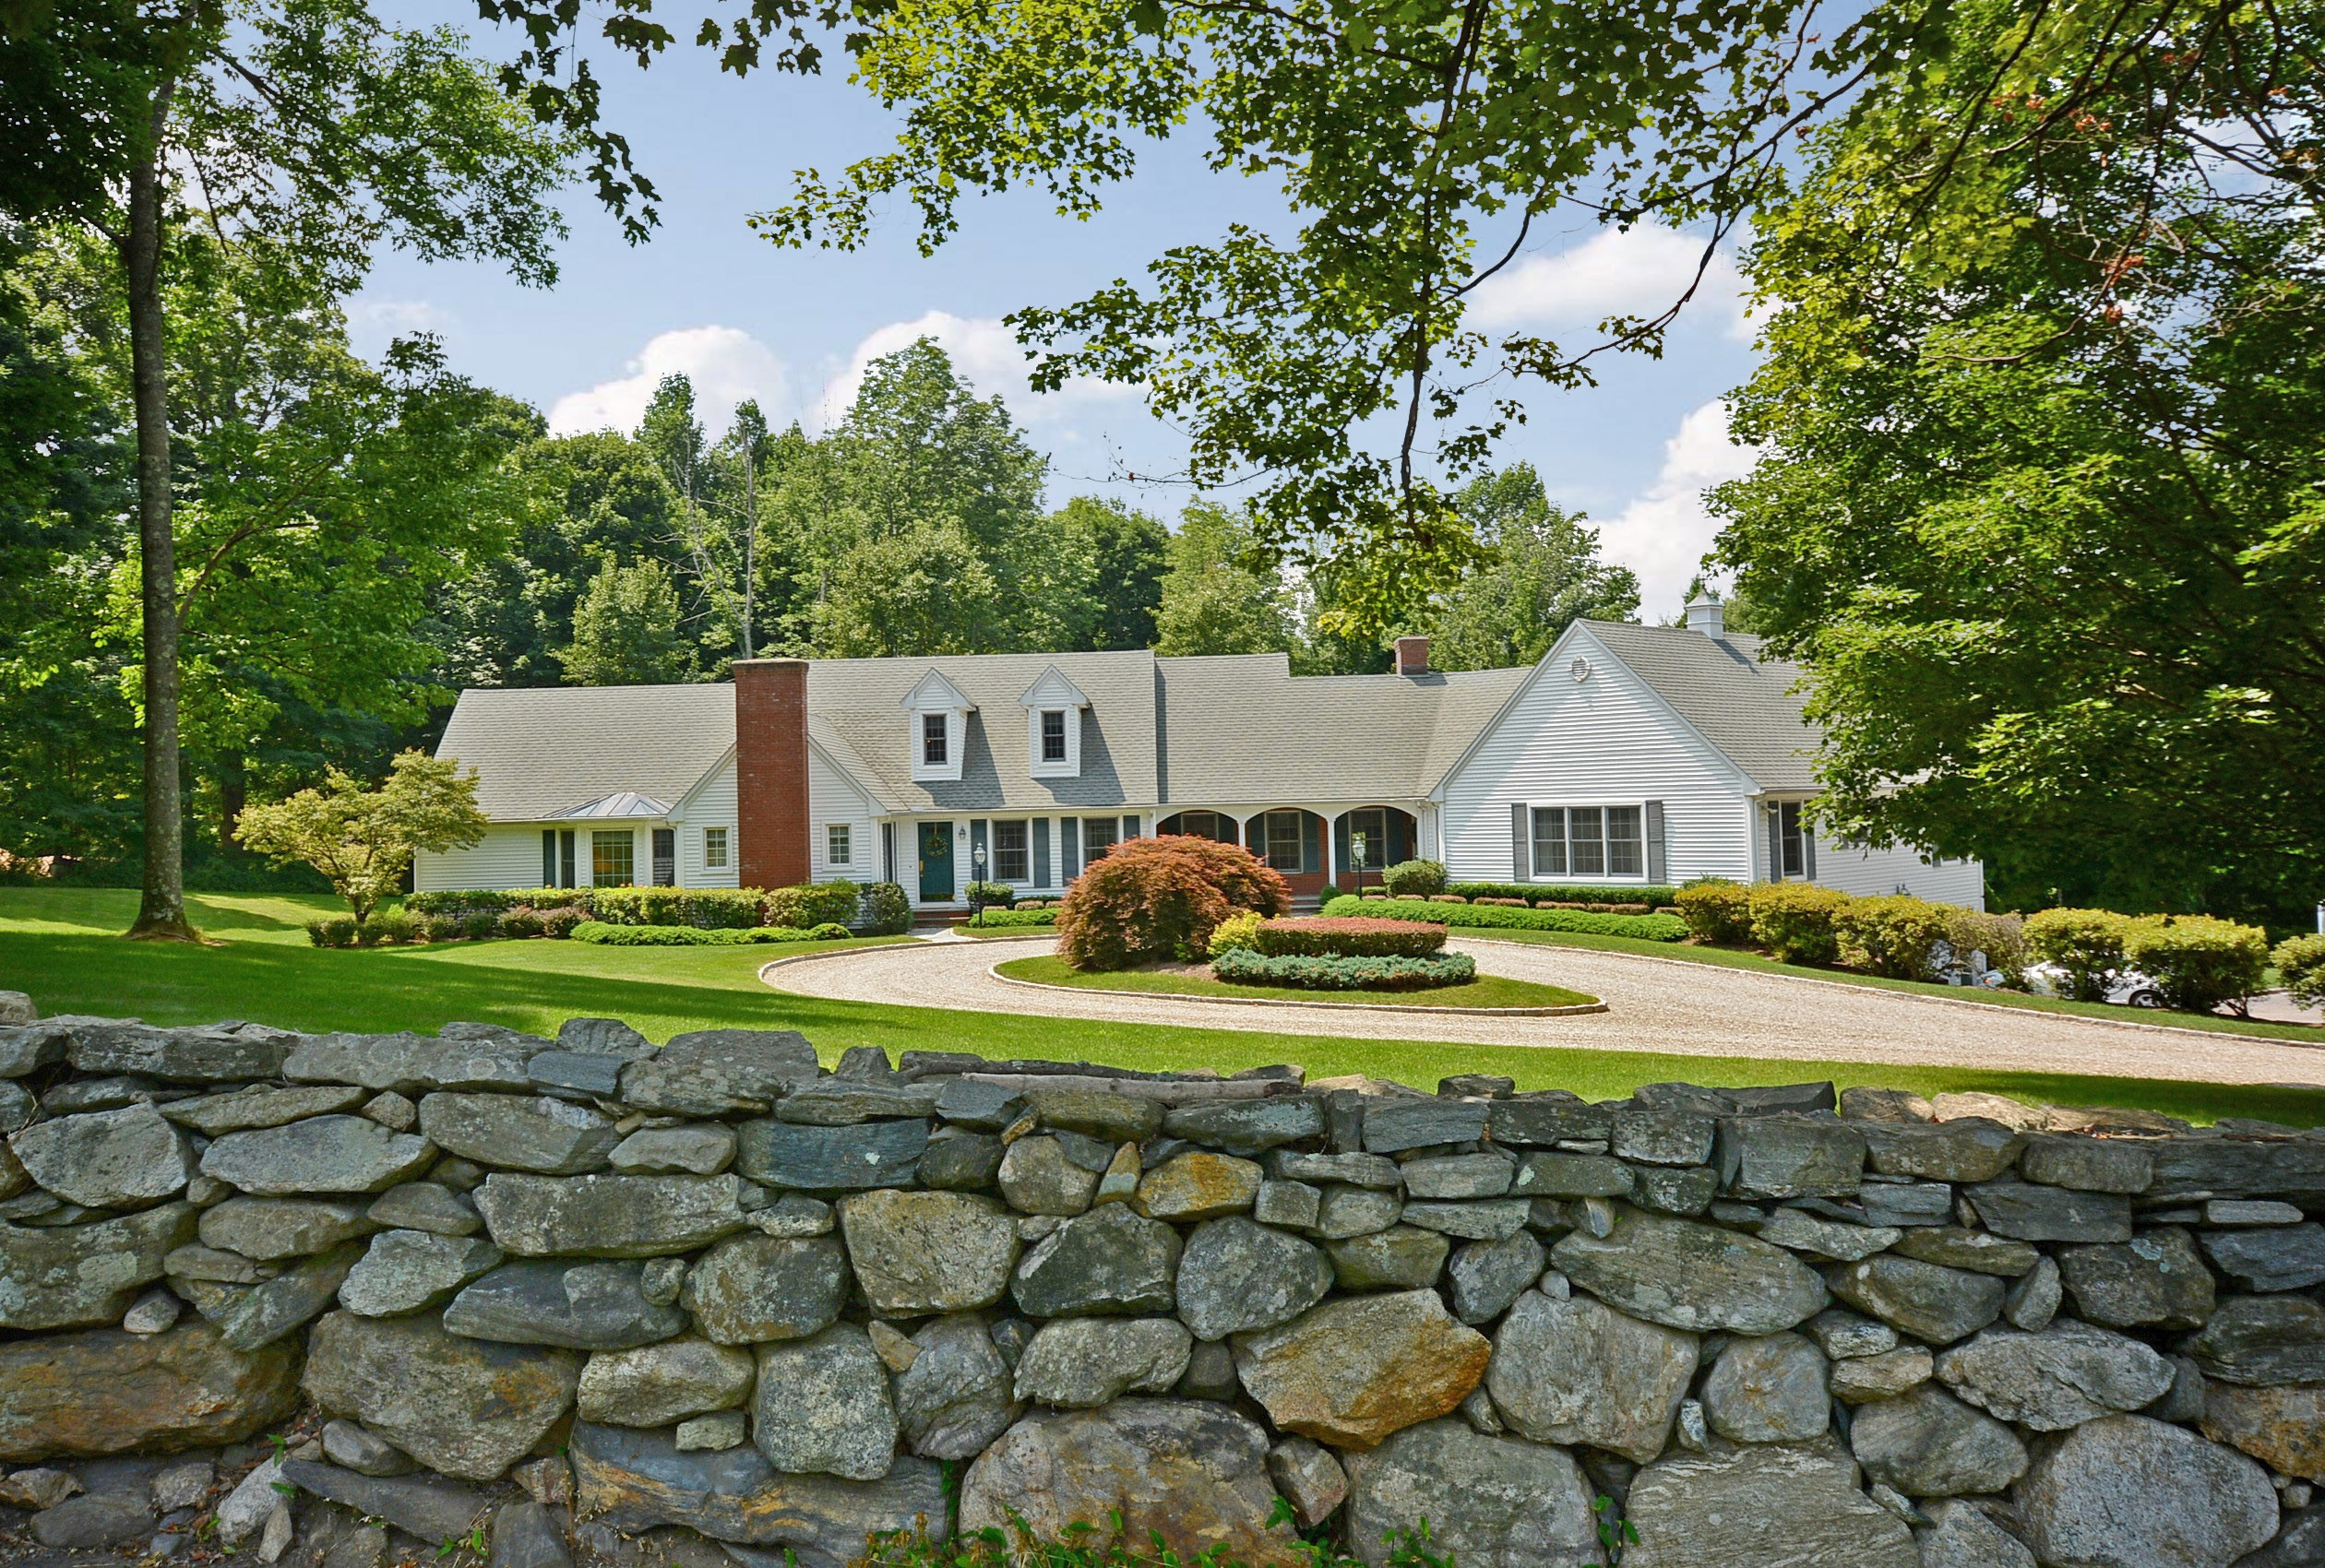 Single Family Home for Sale at Rambling Country Cape 593 North Salem Road Ridgefield, Connecticut 06877 United States